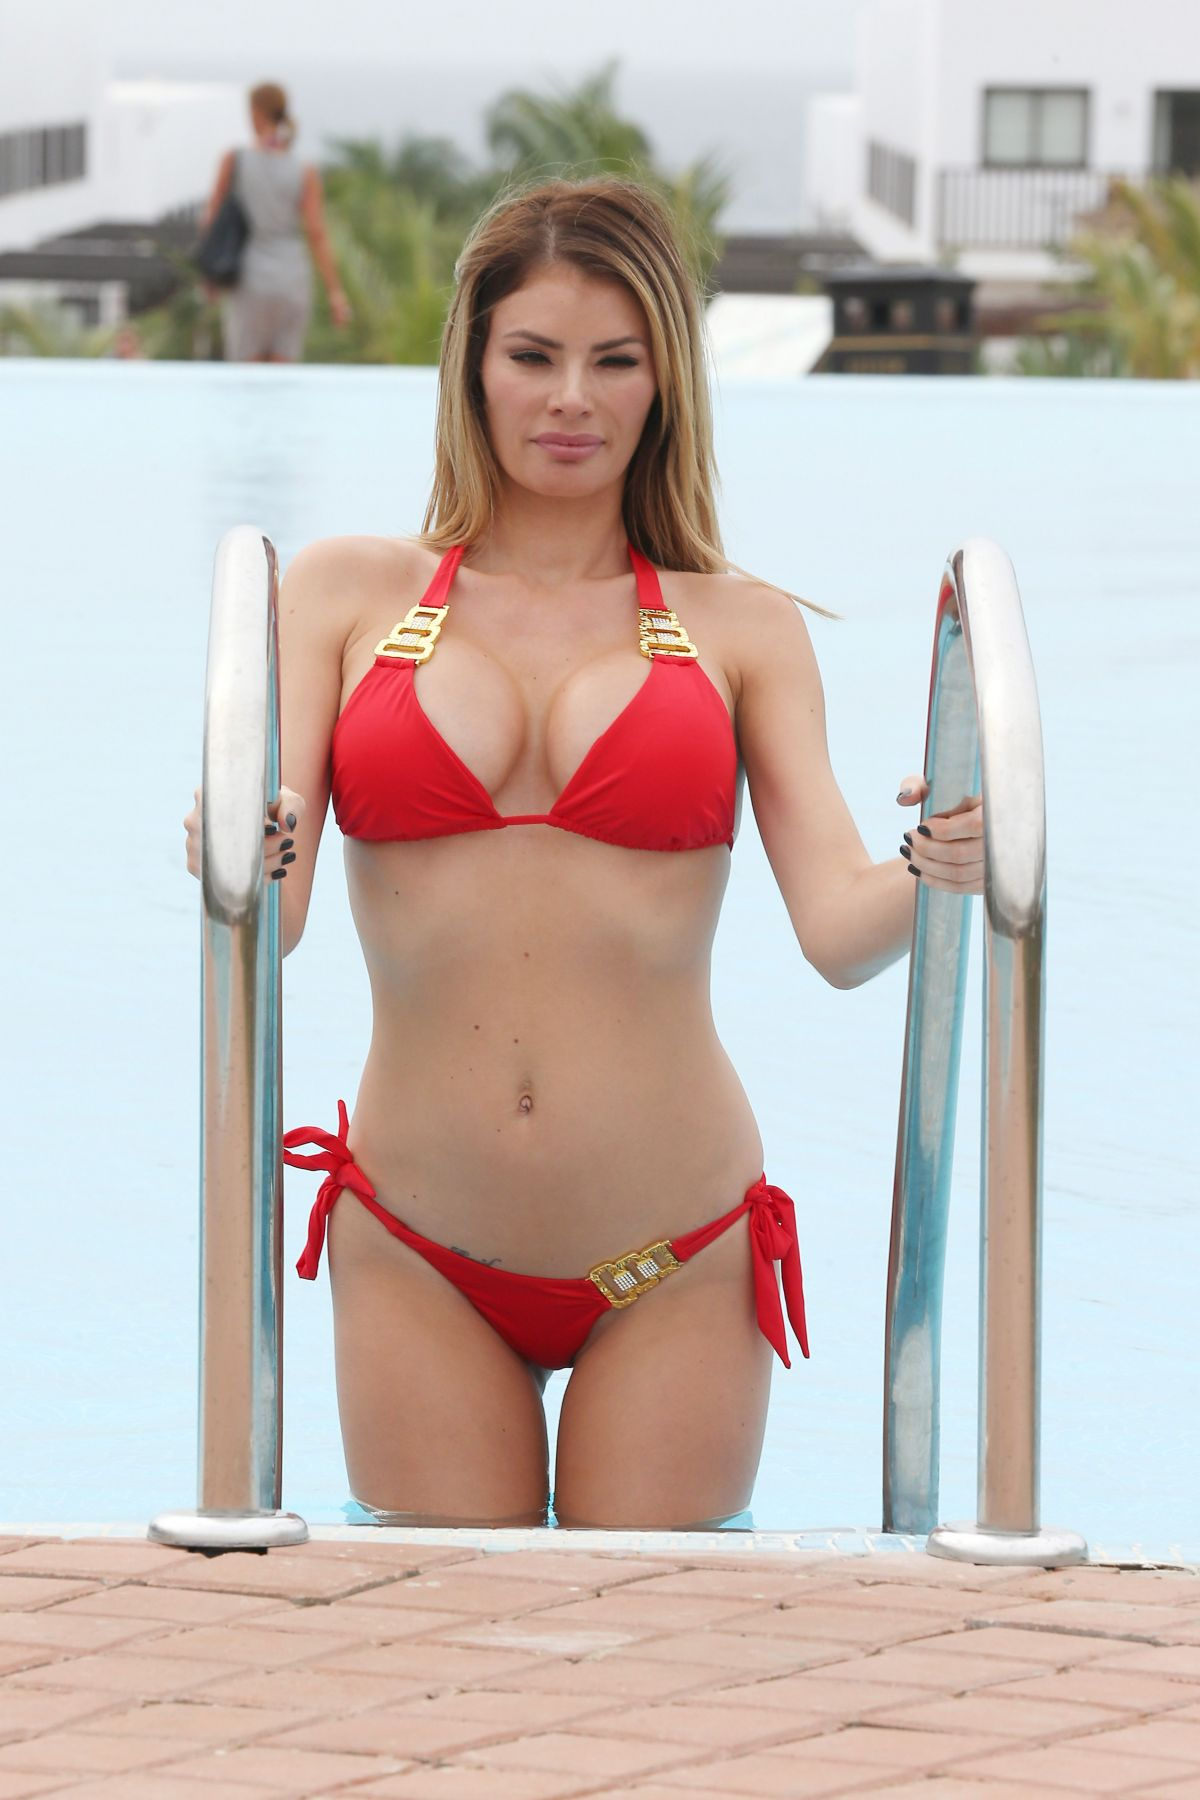 CHLOE SIMS in Bikini at a Pool in Cape Verde